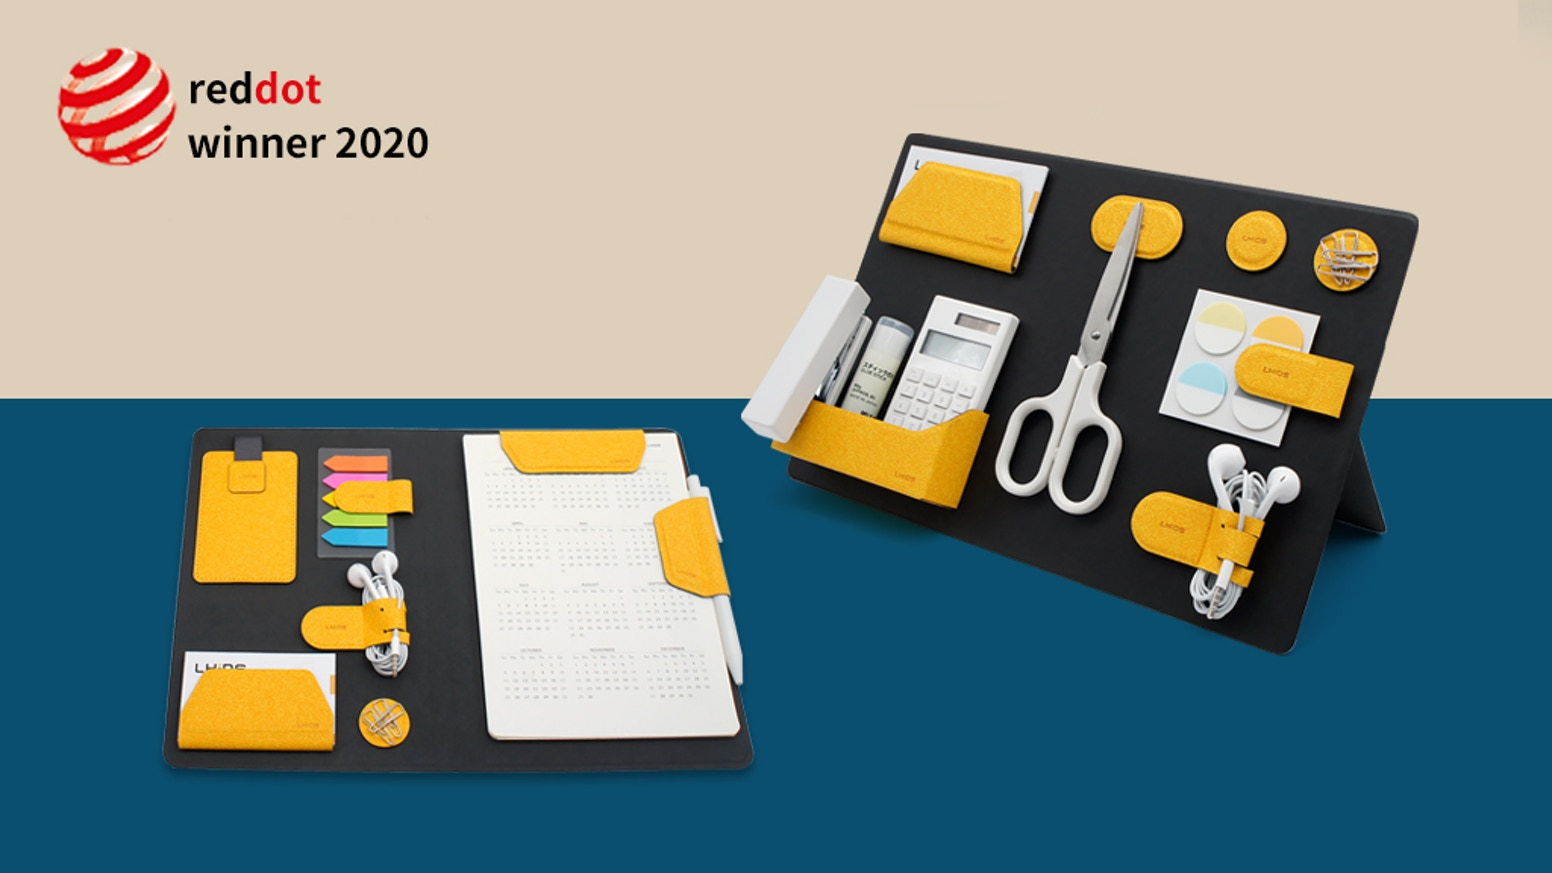 Solution for WorkFromHome, a portable, customizable and catch-all organizing kit that keeps your items tidy & boosts productivity.